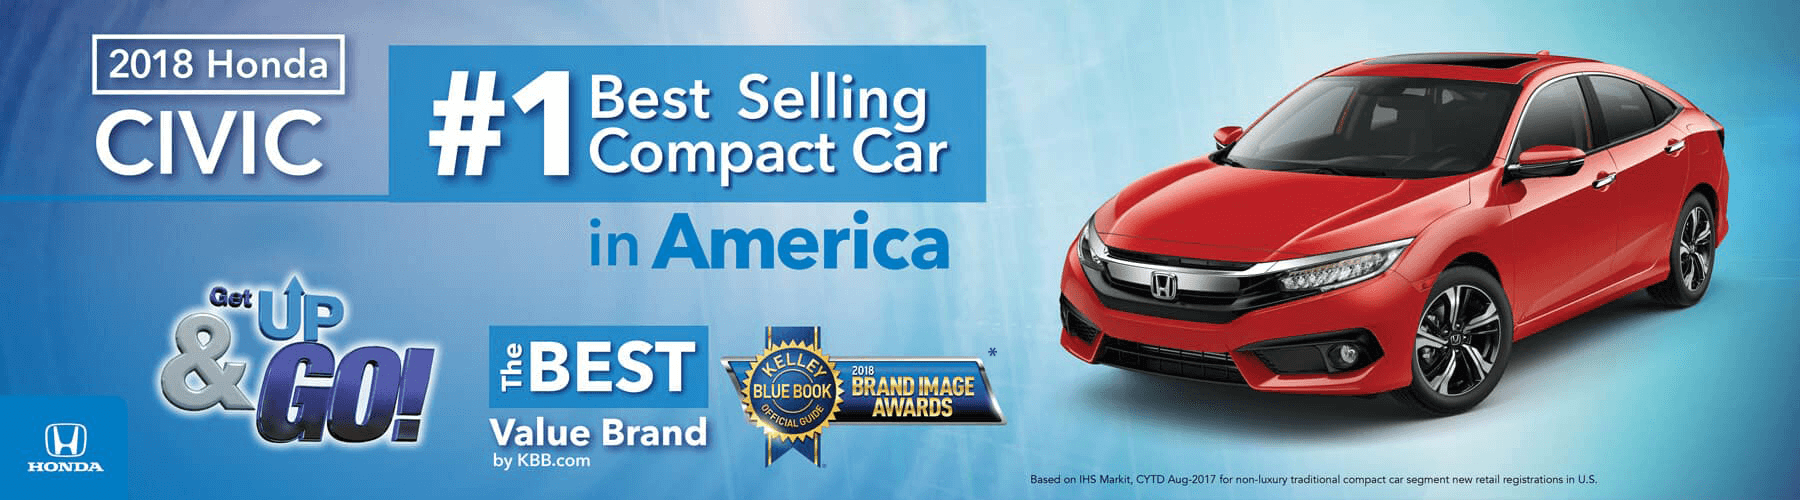 2018 Honda Civic Kelley Blue Book Best-Selling Compact Car in America